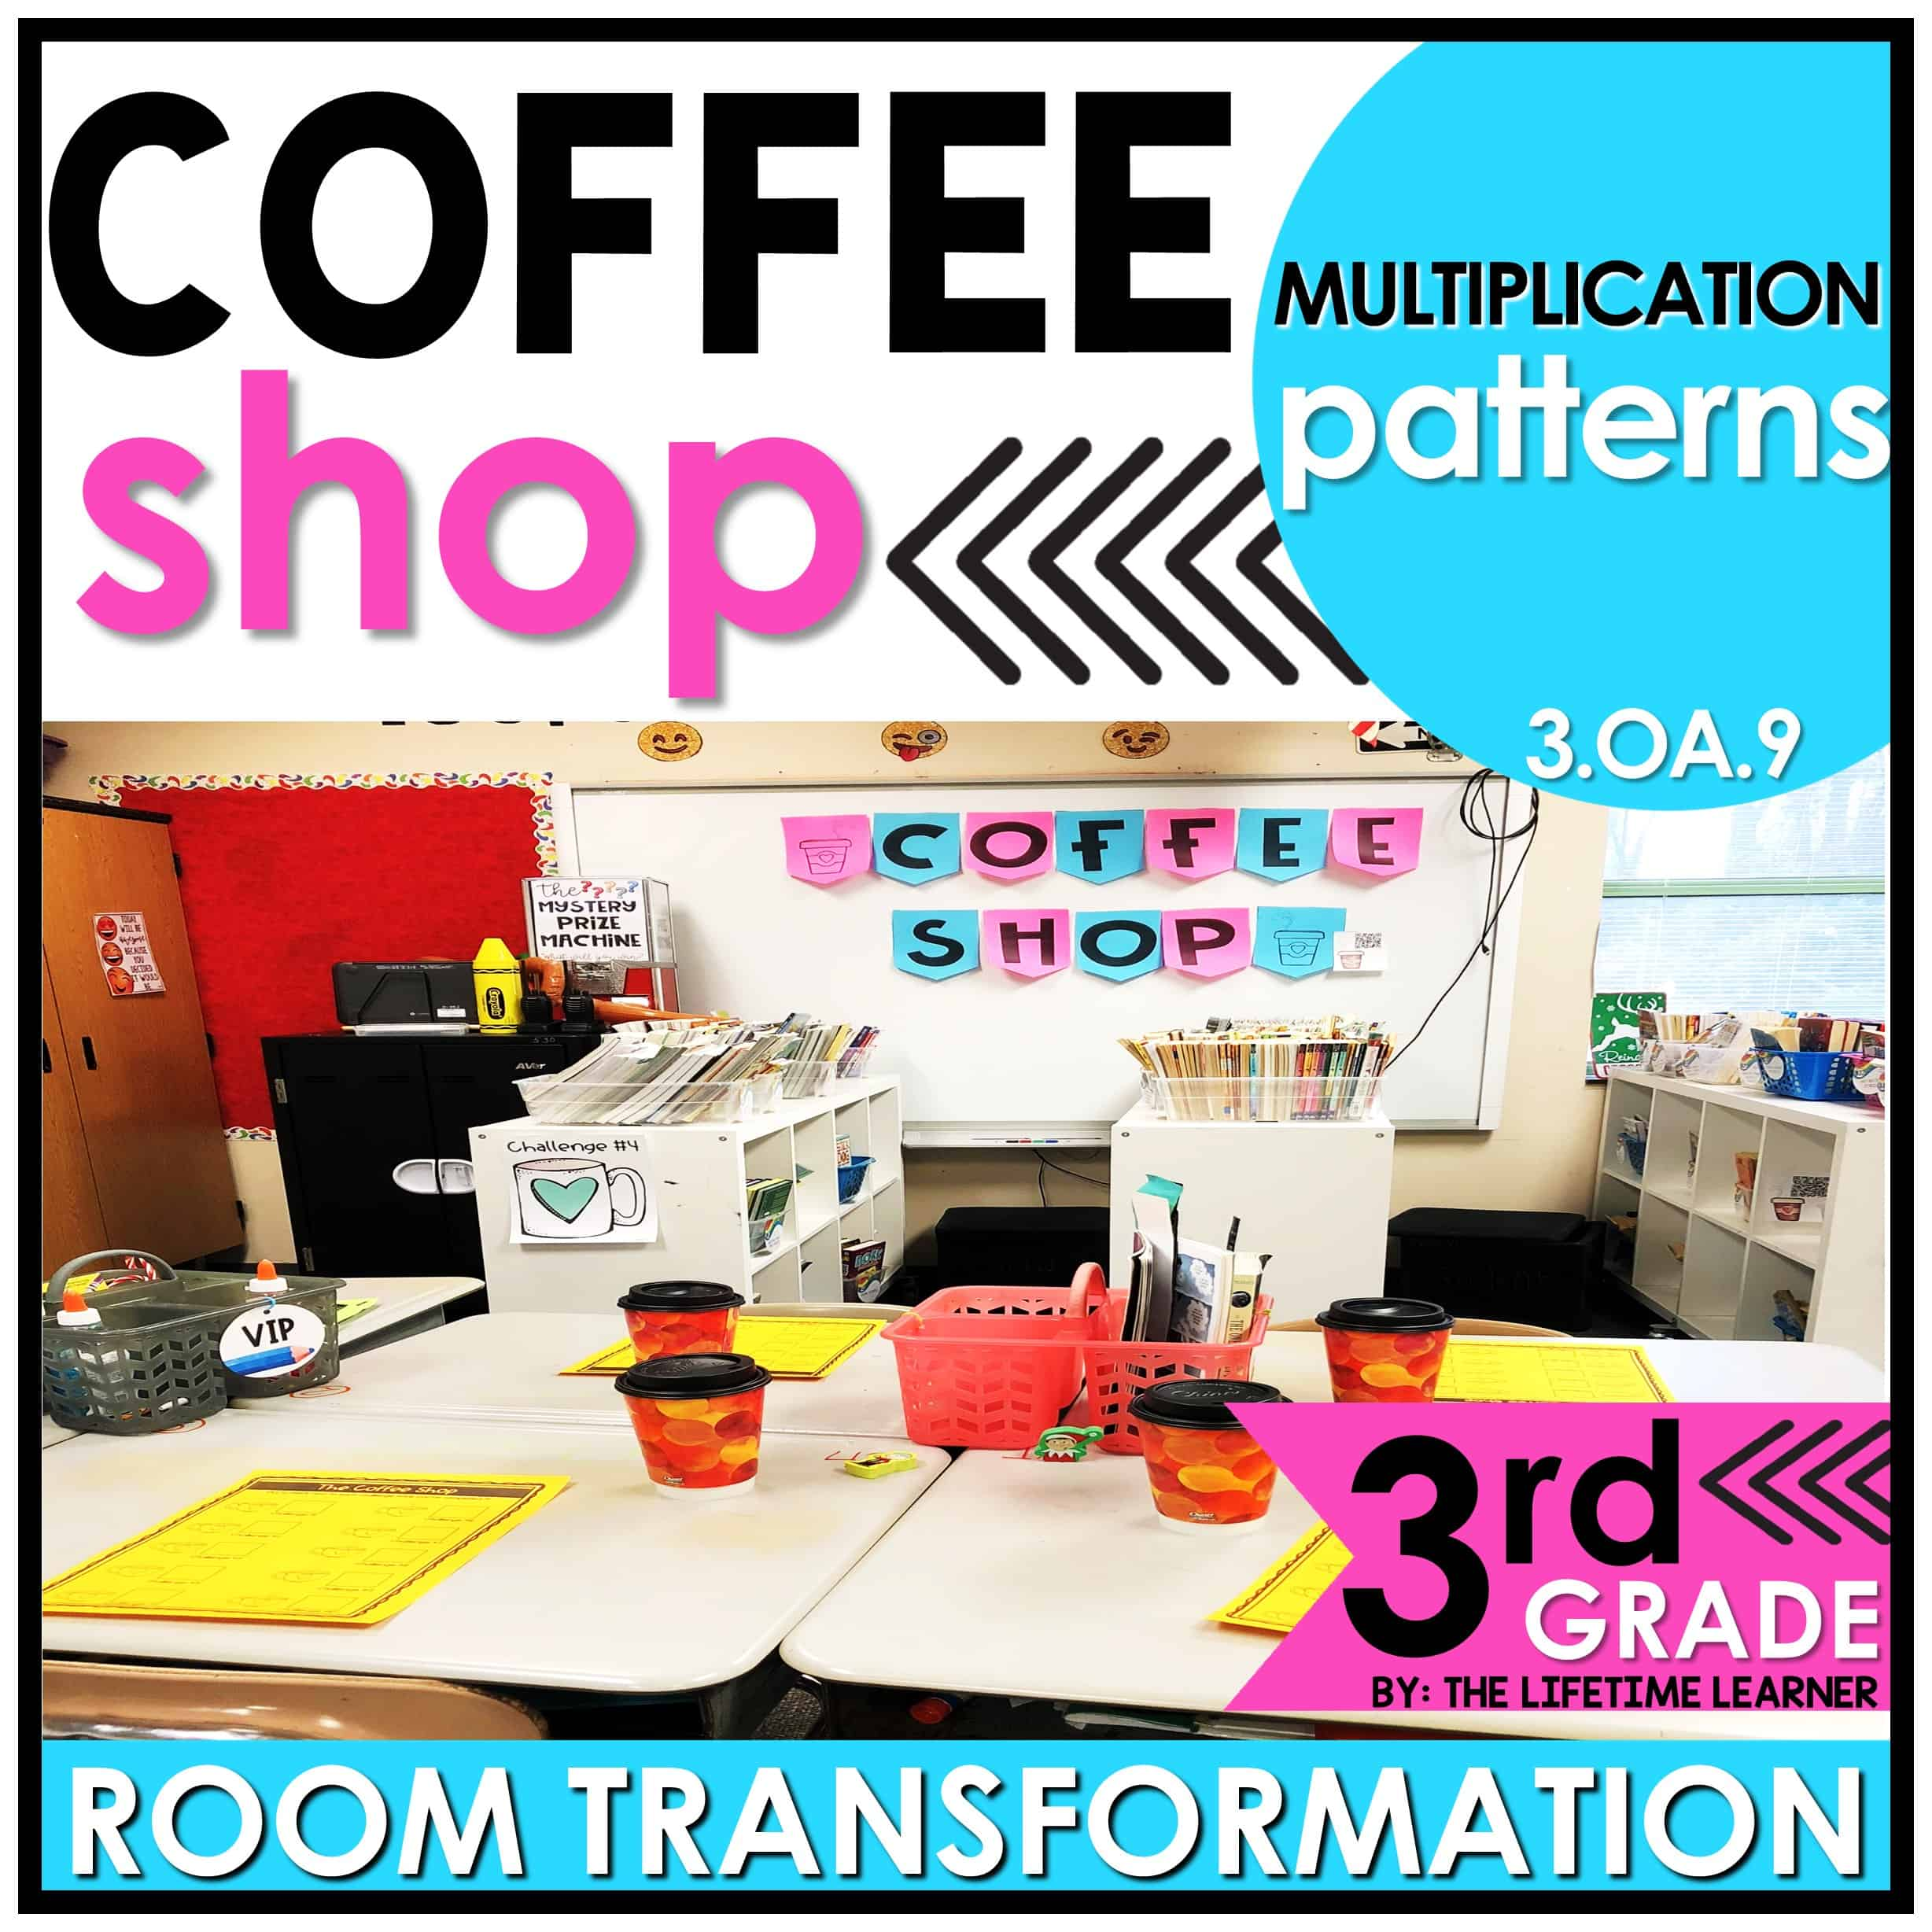 medium resolution of Multiplication Patterns   Coffee Shop Classroom Transformation - The  Lifetime Learner